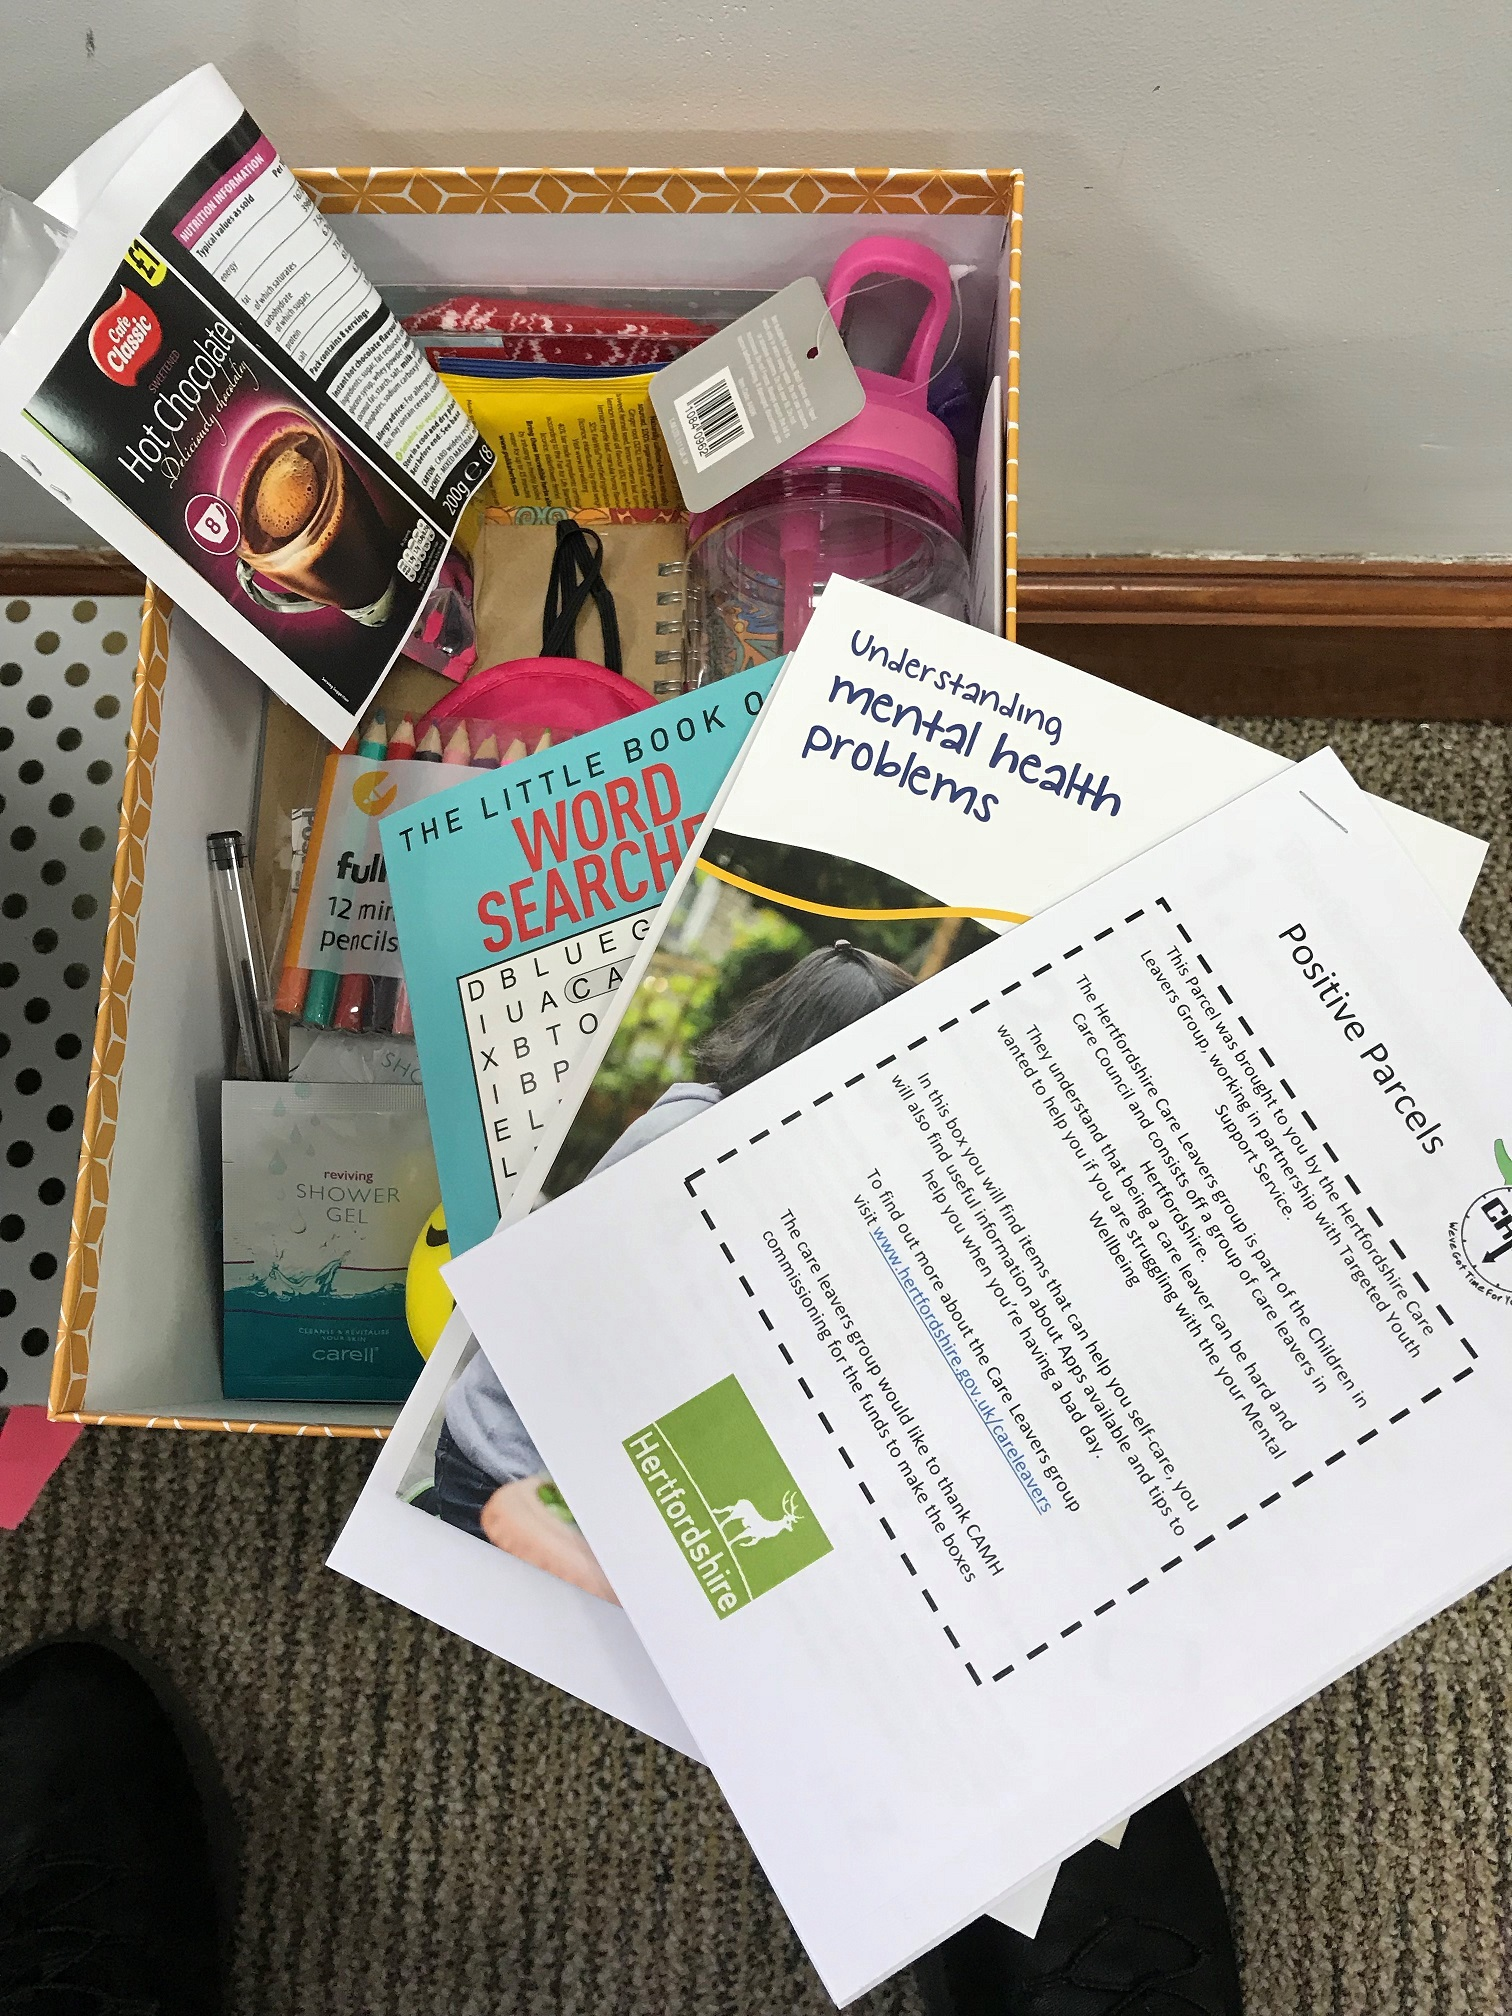 Young people benefit from wellbeing care boxes